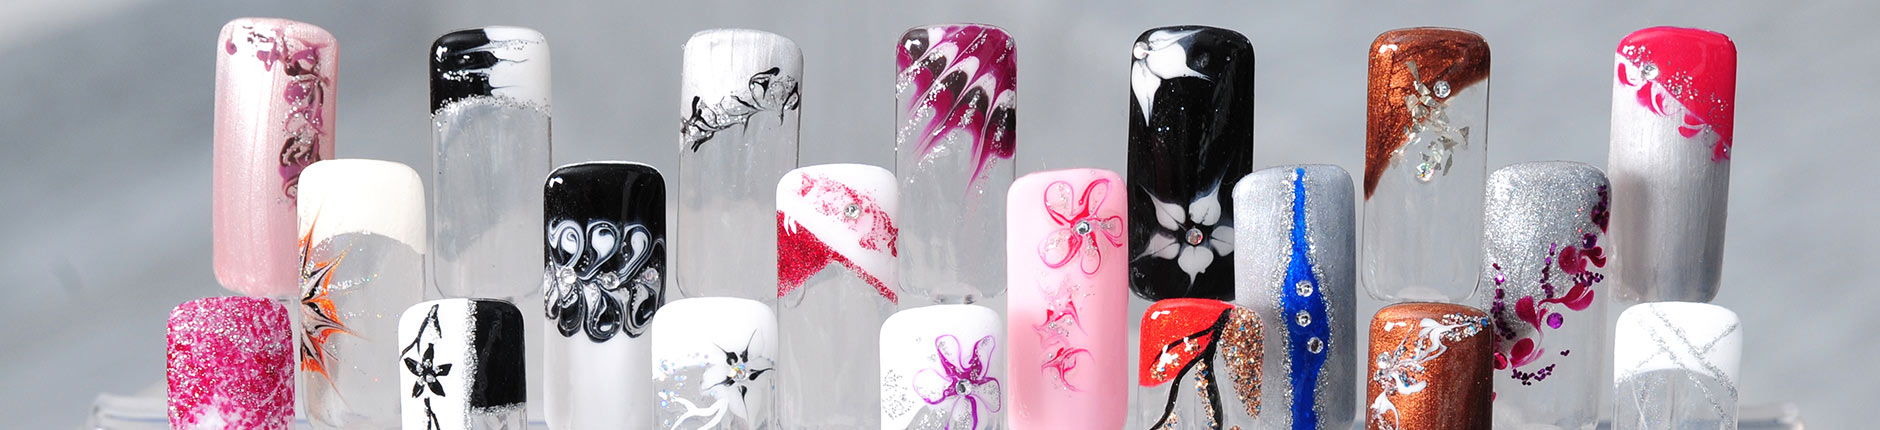 Nagelmodellage / Nageldesign